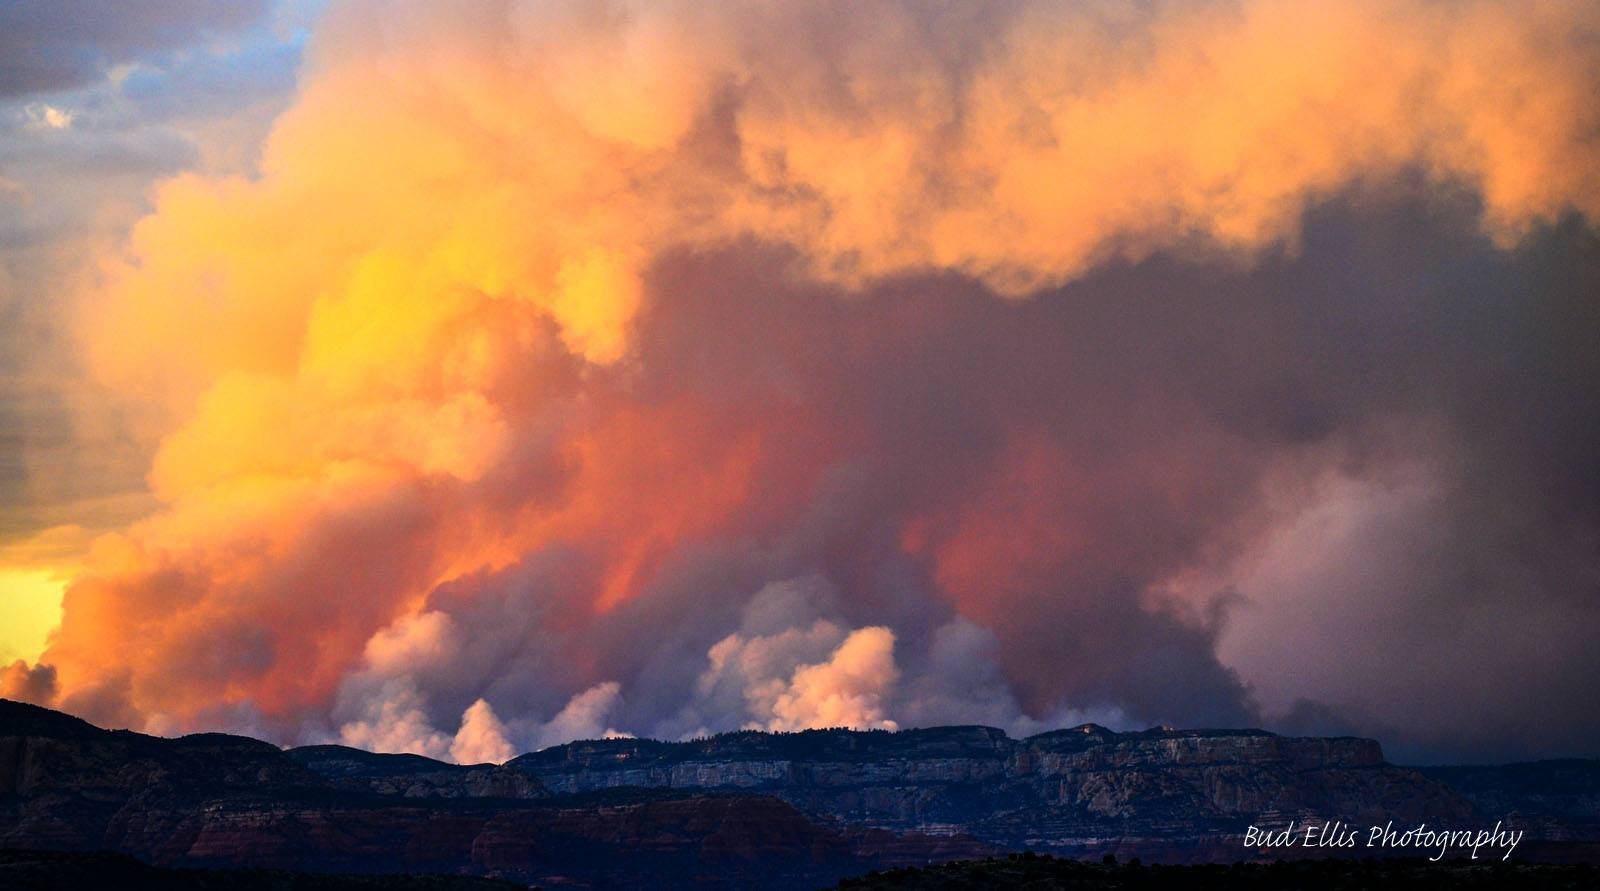 Photo taken about 15 miles south of Sedona on Memorial Day looking at the Slide Fire cloud of smoke illuminated by the sunset. (Source: Bud Ellis)